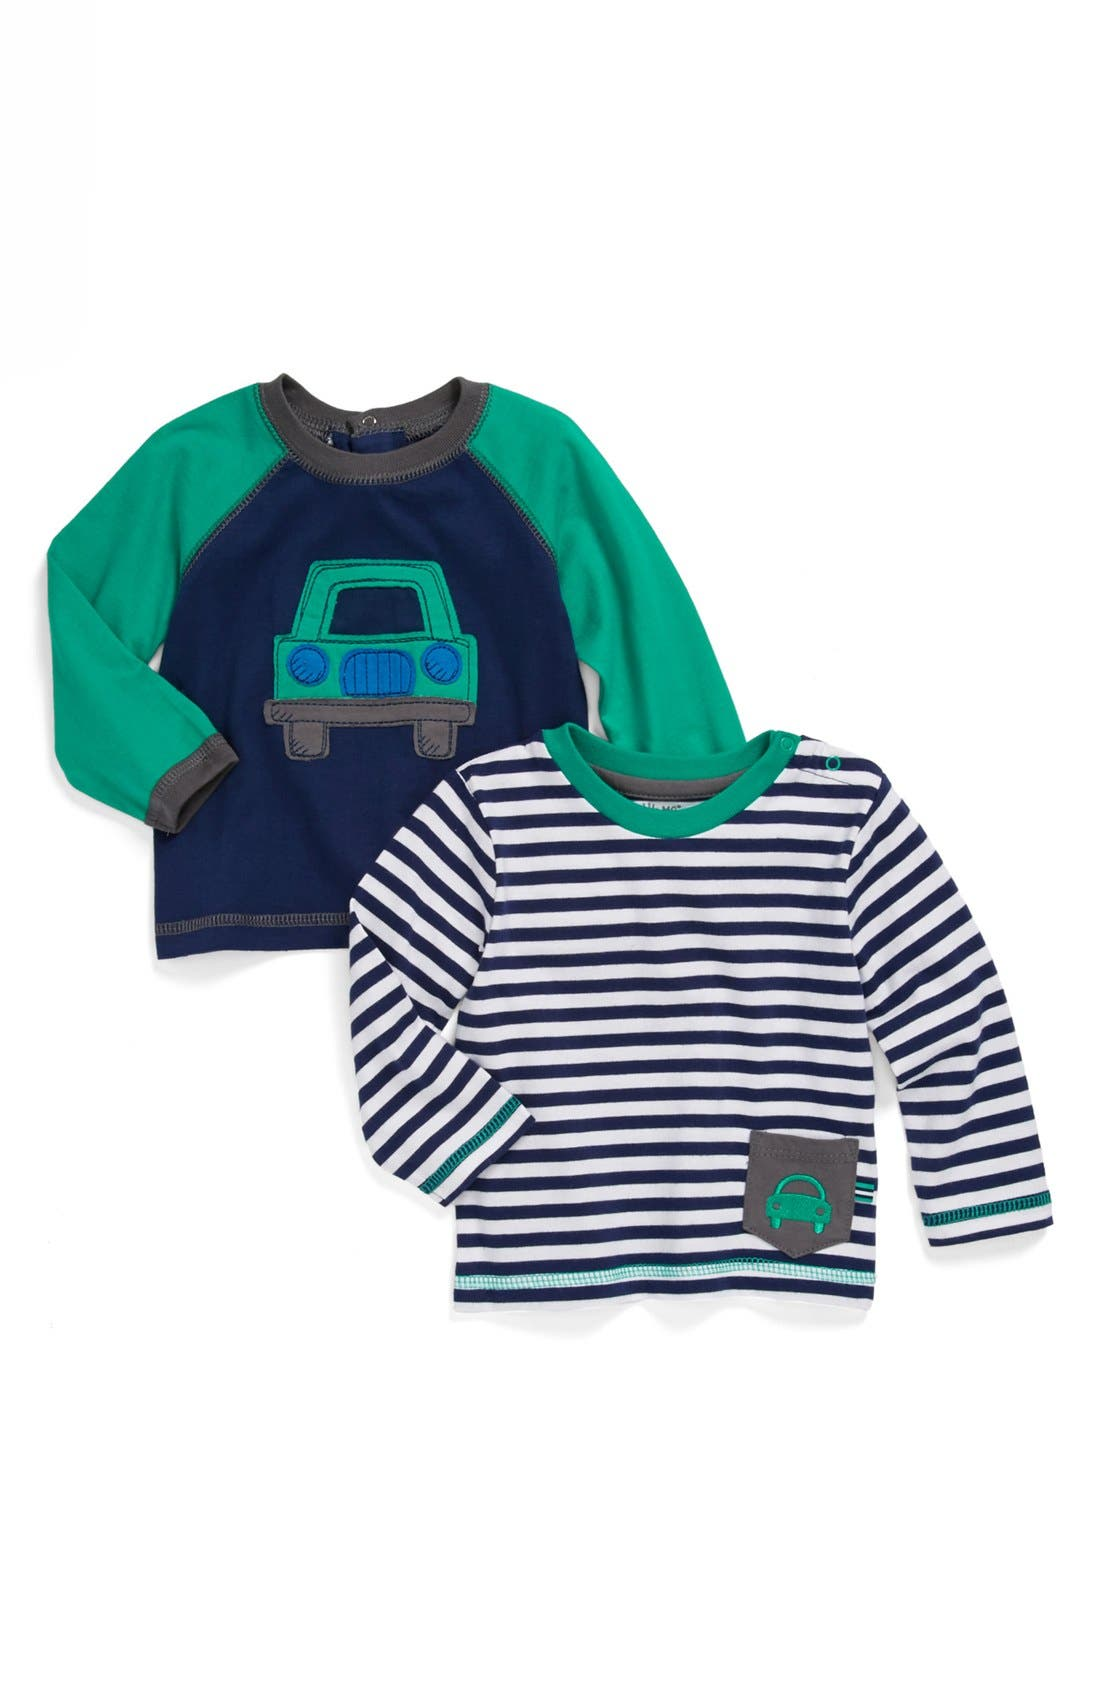 Main Image - Little Me 'Car' T-Shirt (2-Pack) (Baby)